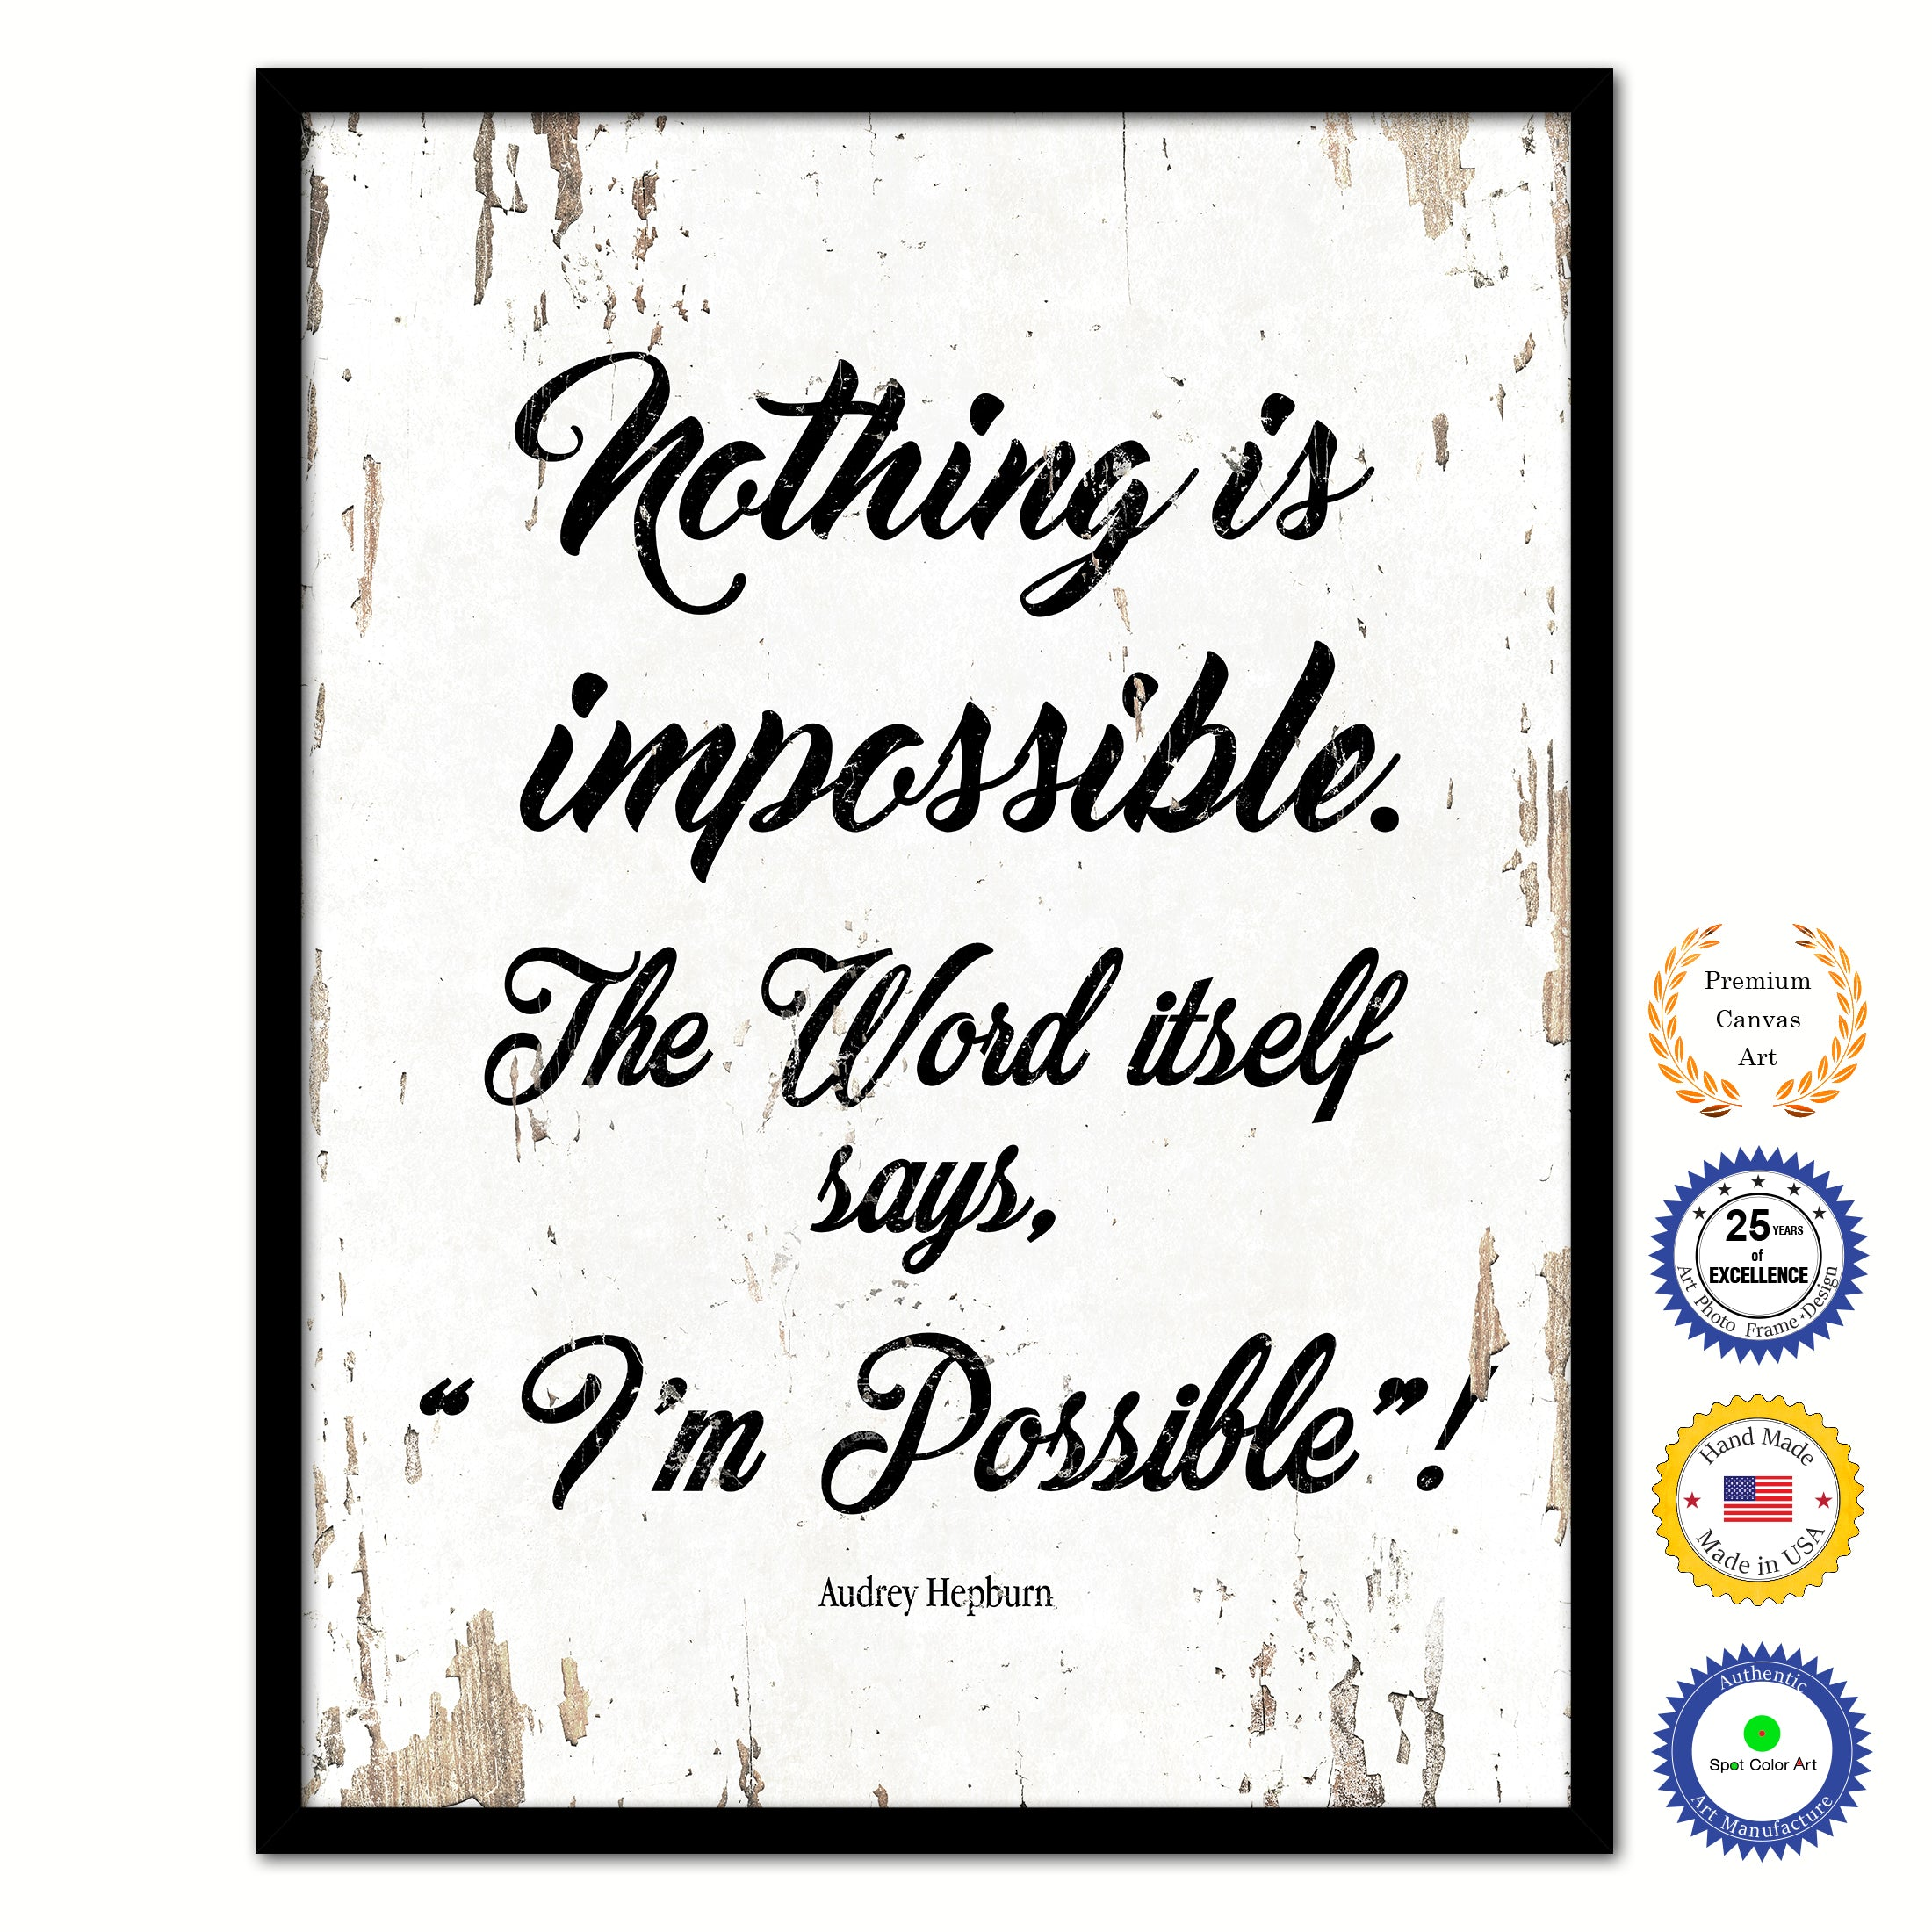 inspirational frames for office. Nothing Is Impossible The Word Itself Says I\u0027m Possible Audrey Hepburn Inspirational Quote Saying Framed Canvas Print Gift Ideas Home Decor Wall Art 111834 Frames For Office